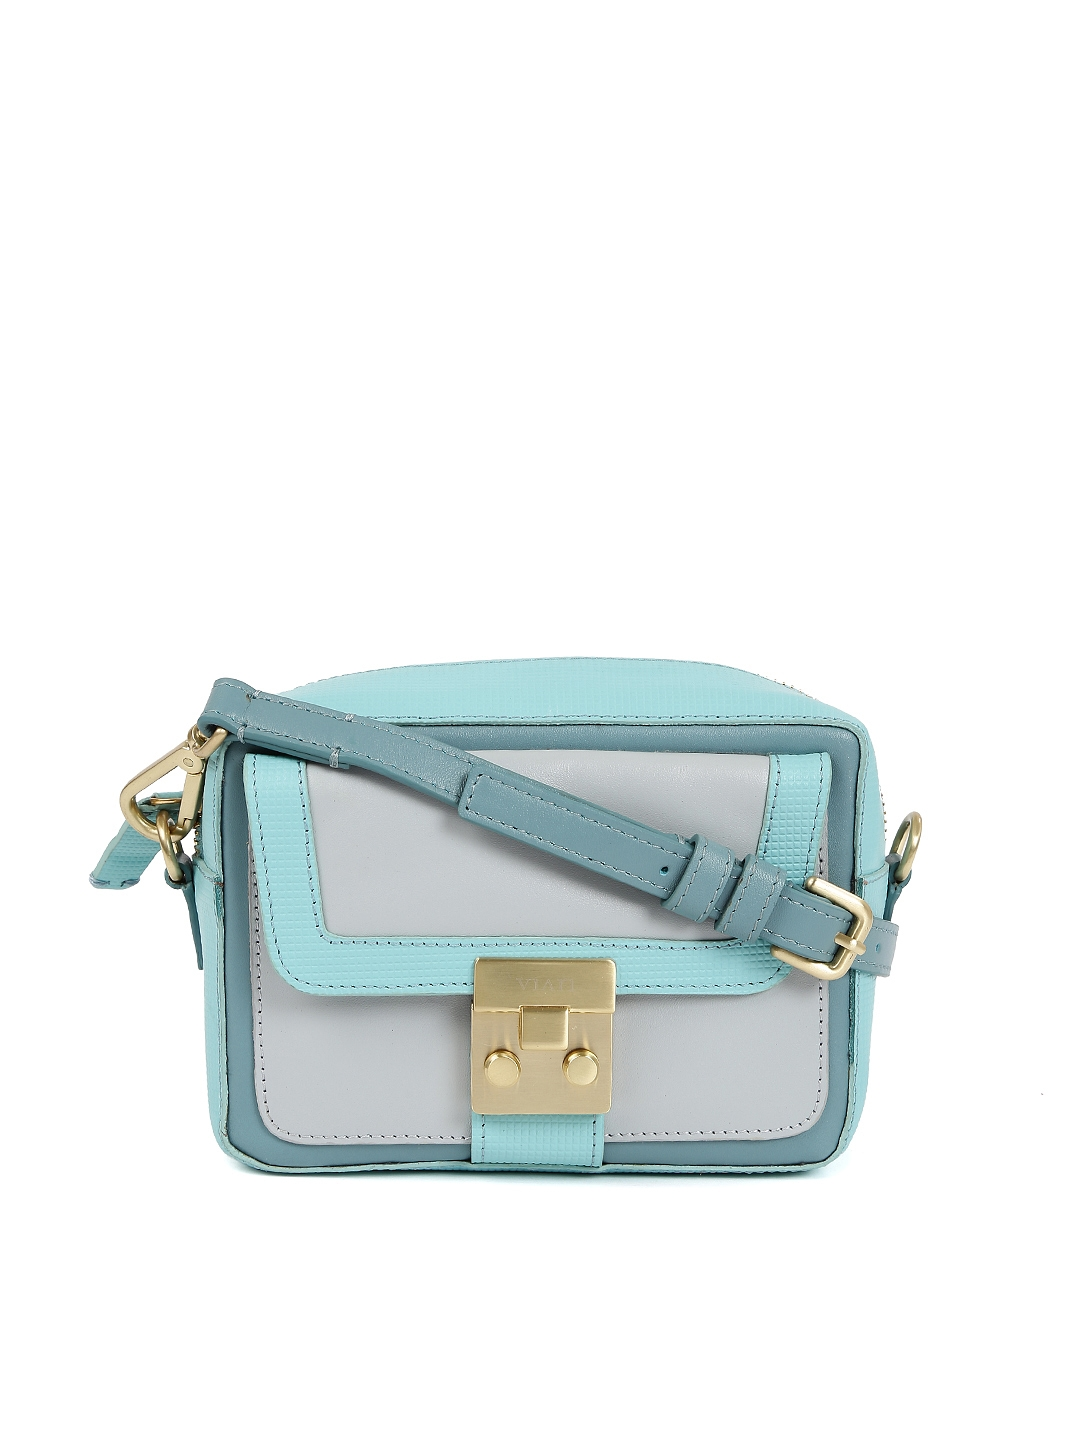 c3ae56c19a7 Buy VIARI Blue & Grey Colourblocked Murano Leather Sling Bag ...